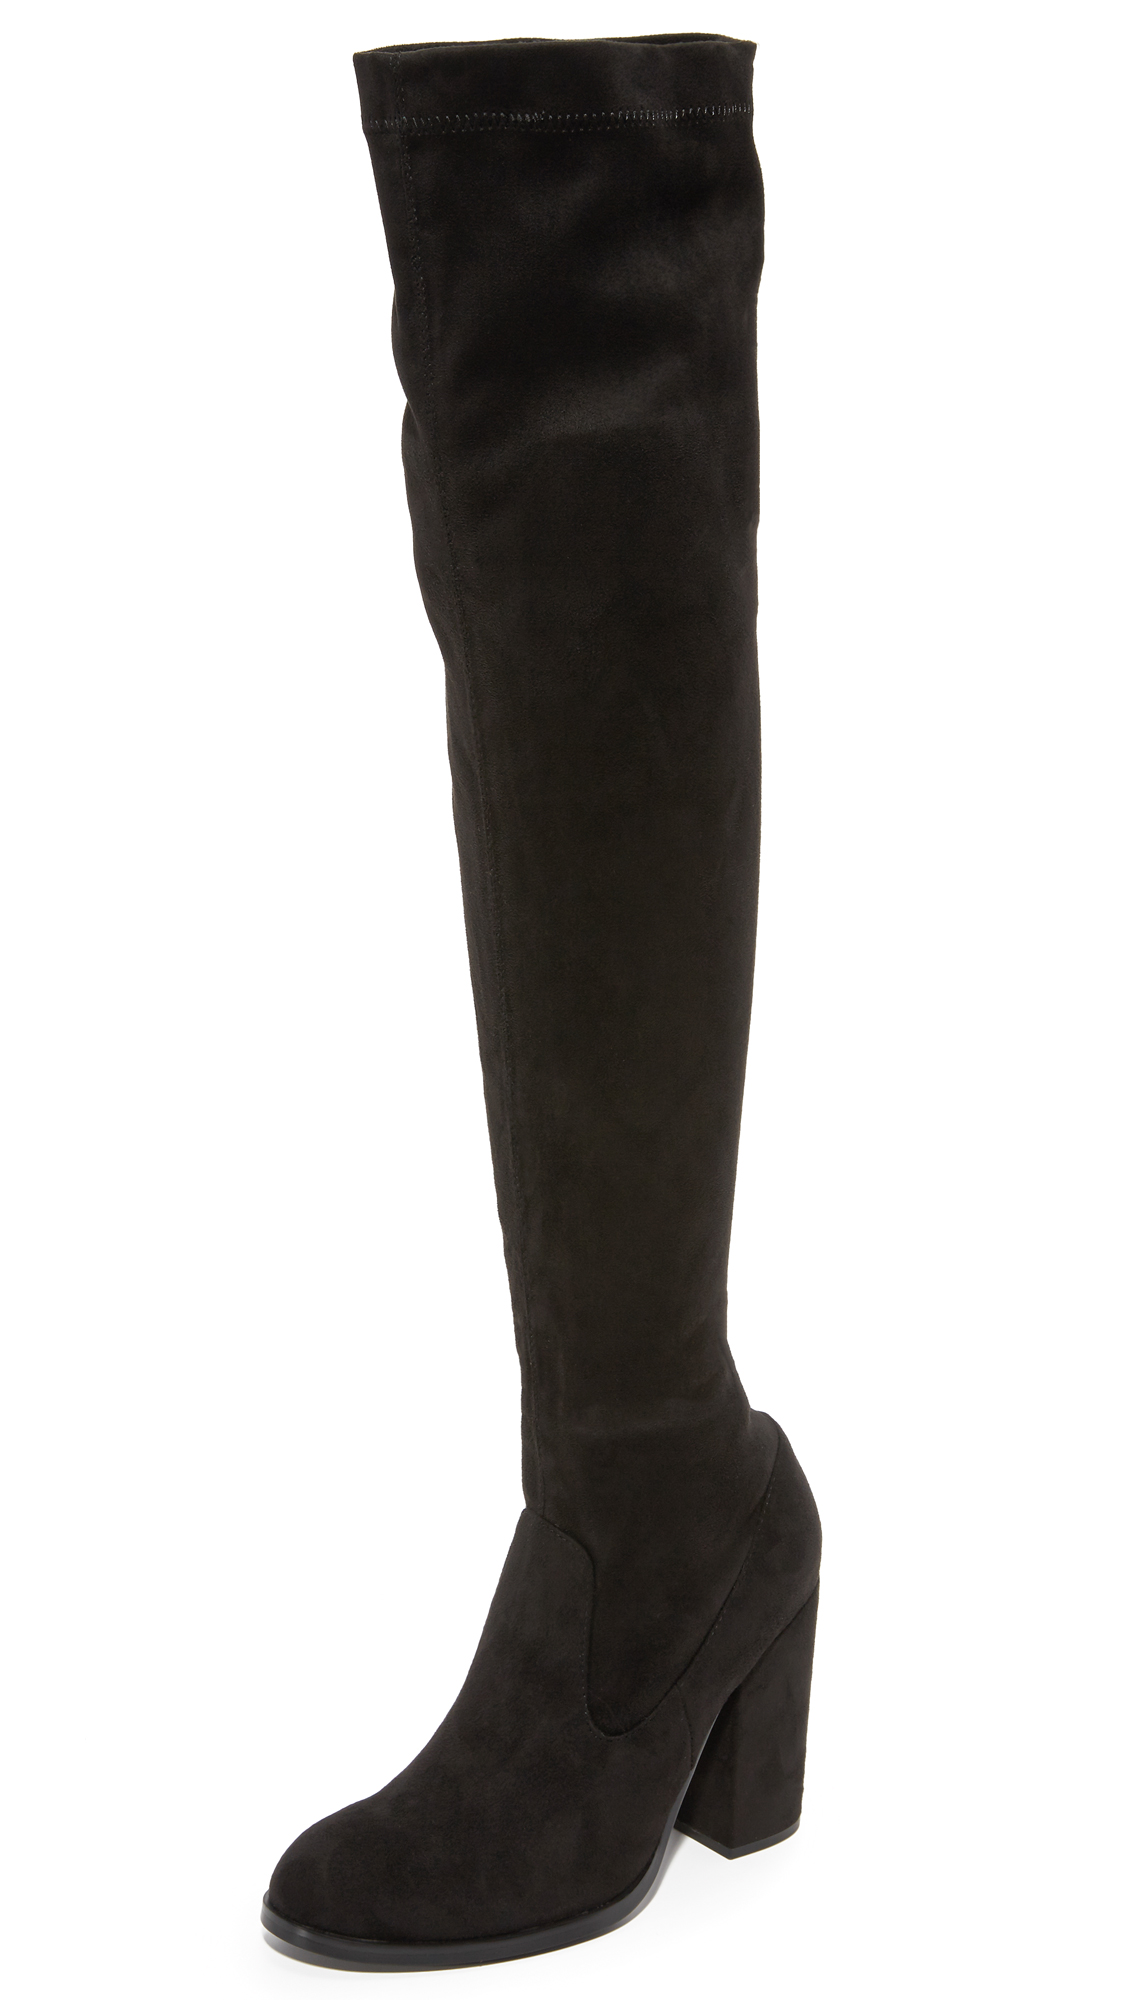 Sol Sana Bella Stretch Over The Knee Boots - Black